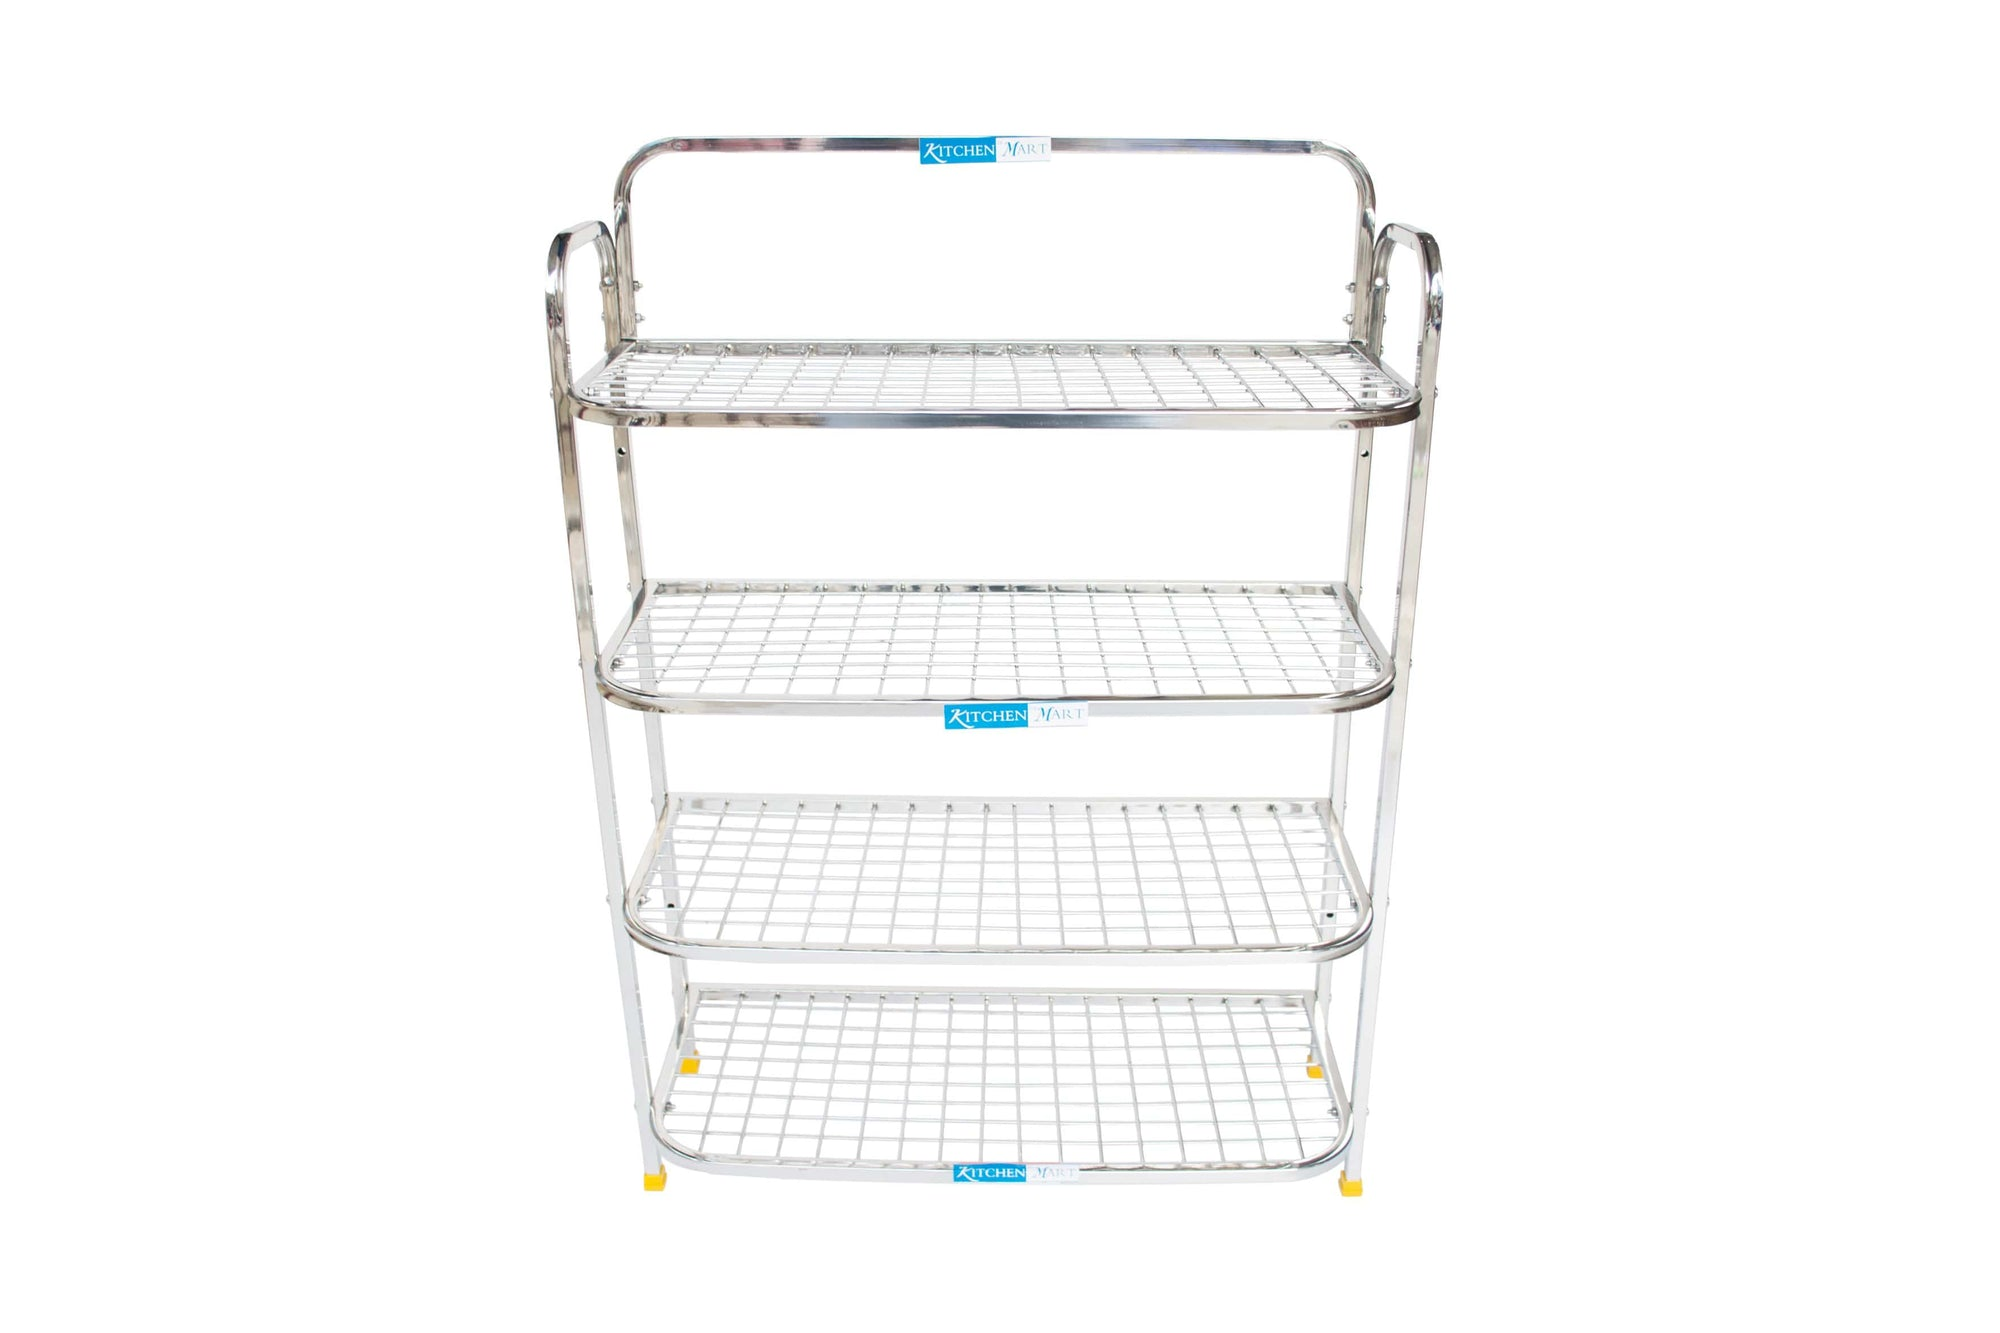 Kitchen Mart Stainless Steel shoe rack/ Kitchen Storage shelf rack (30x4) - KITCHEN MART